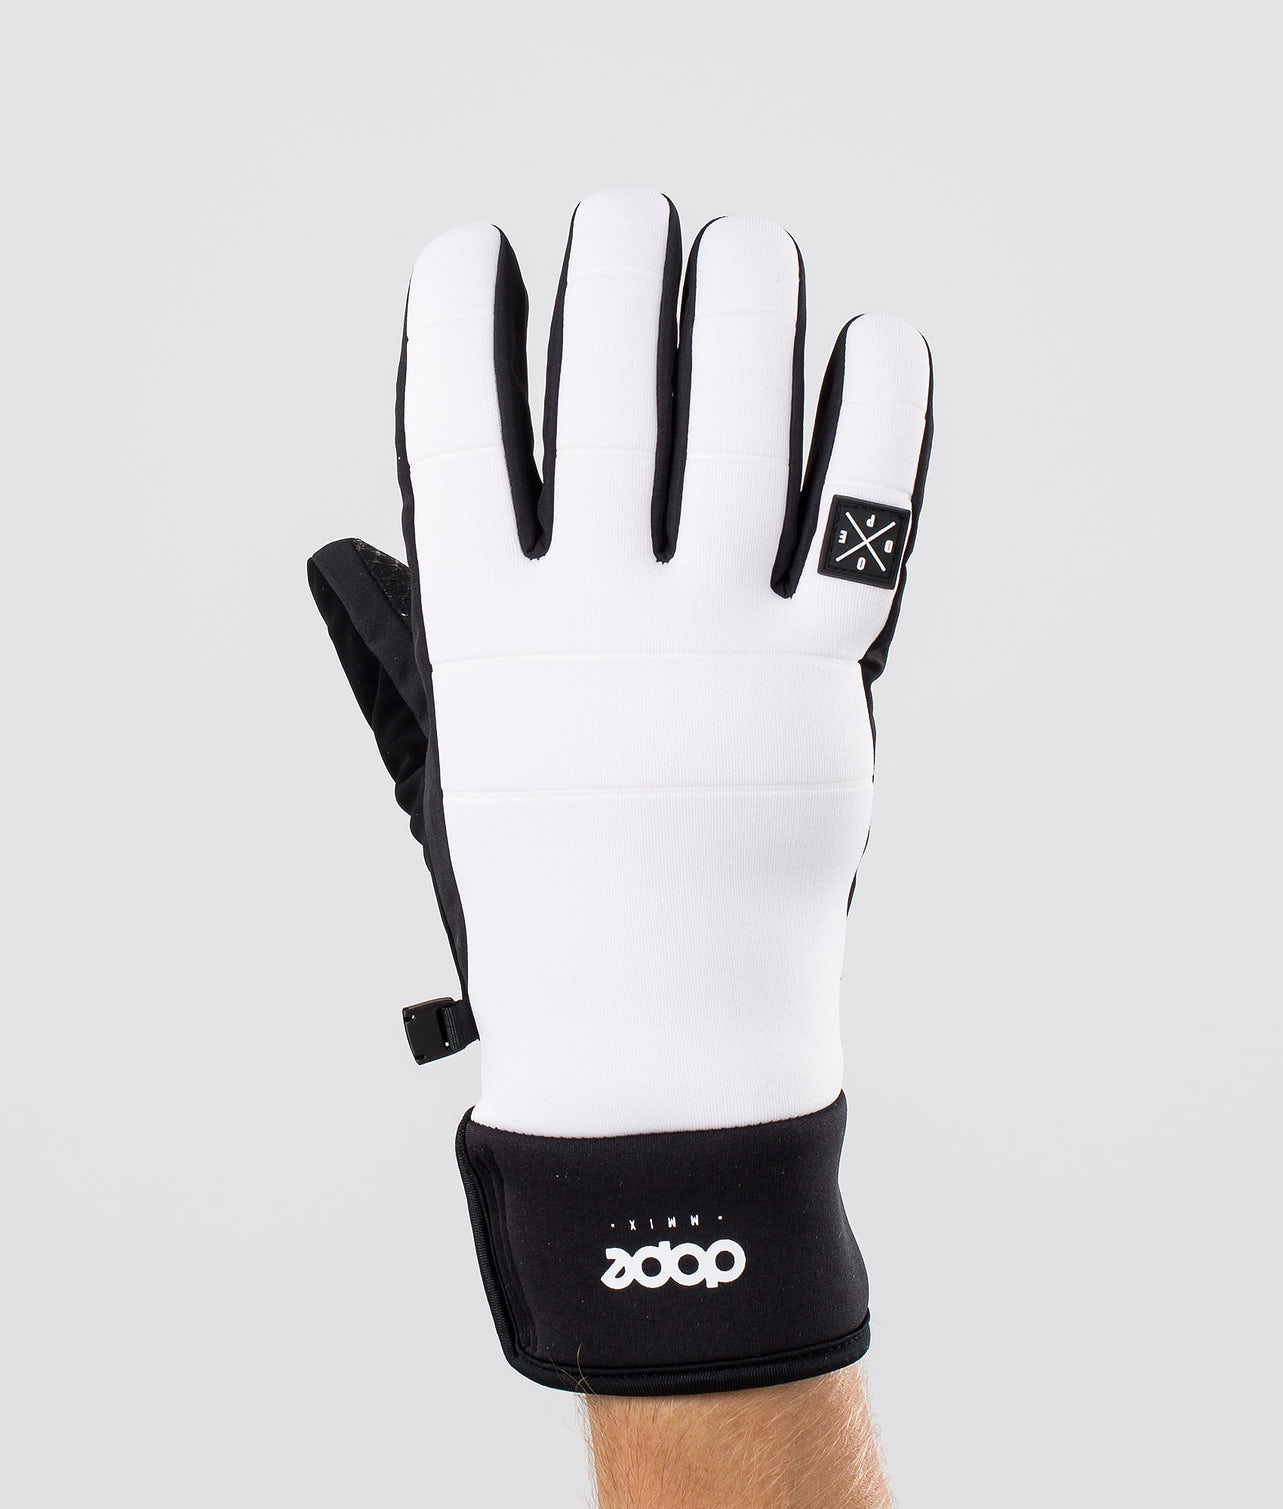 Buy Signet Glove Ski Gloves from Dope at Ridestore.com - Always free shipping, free returns and 30 days money back guarantee